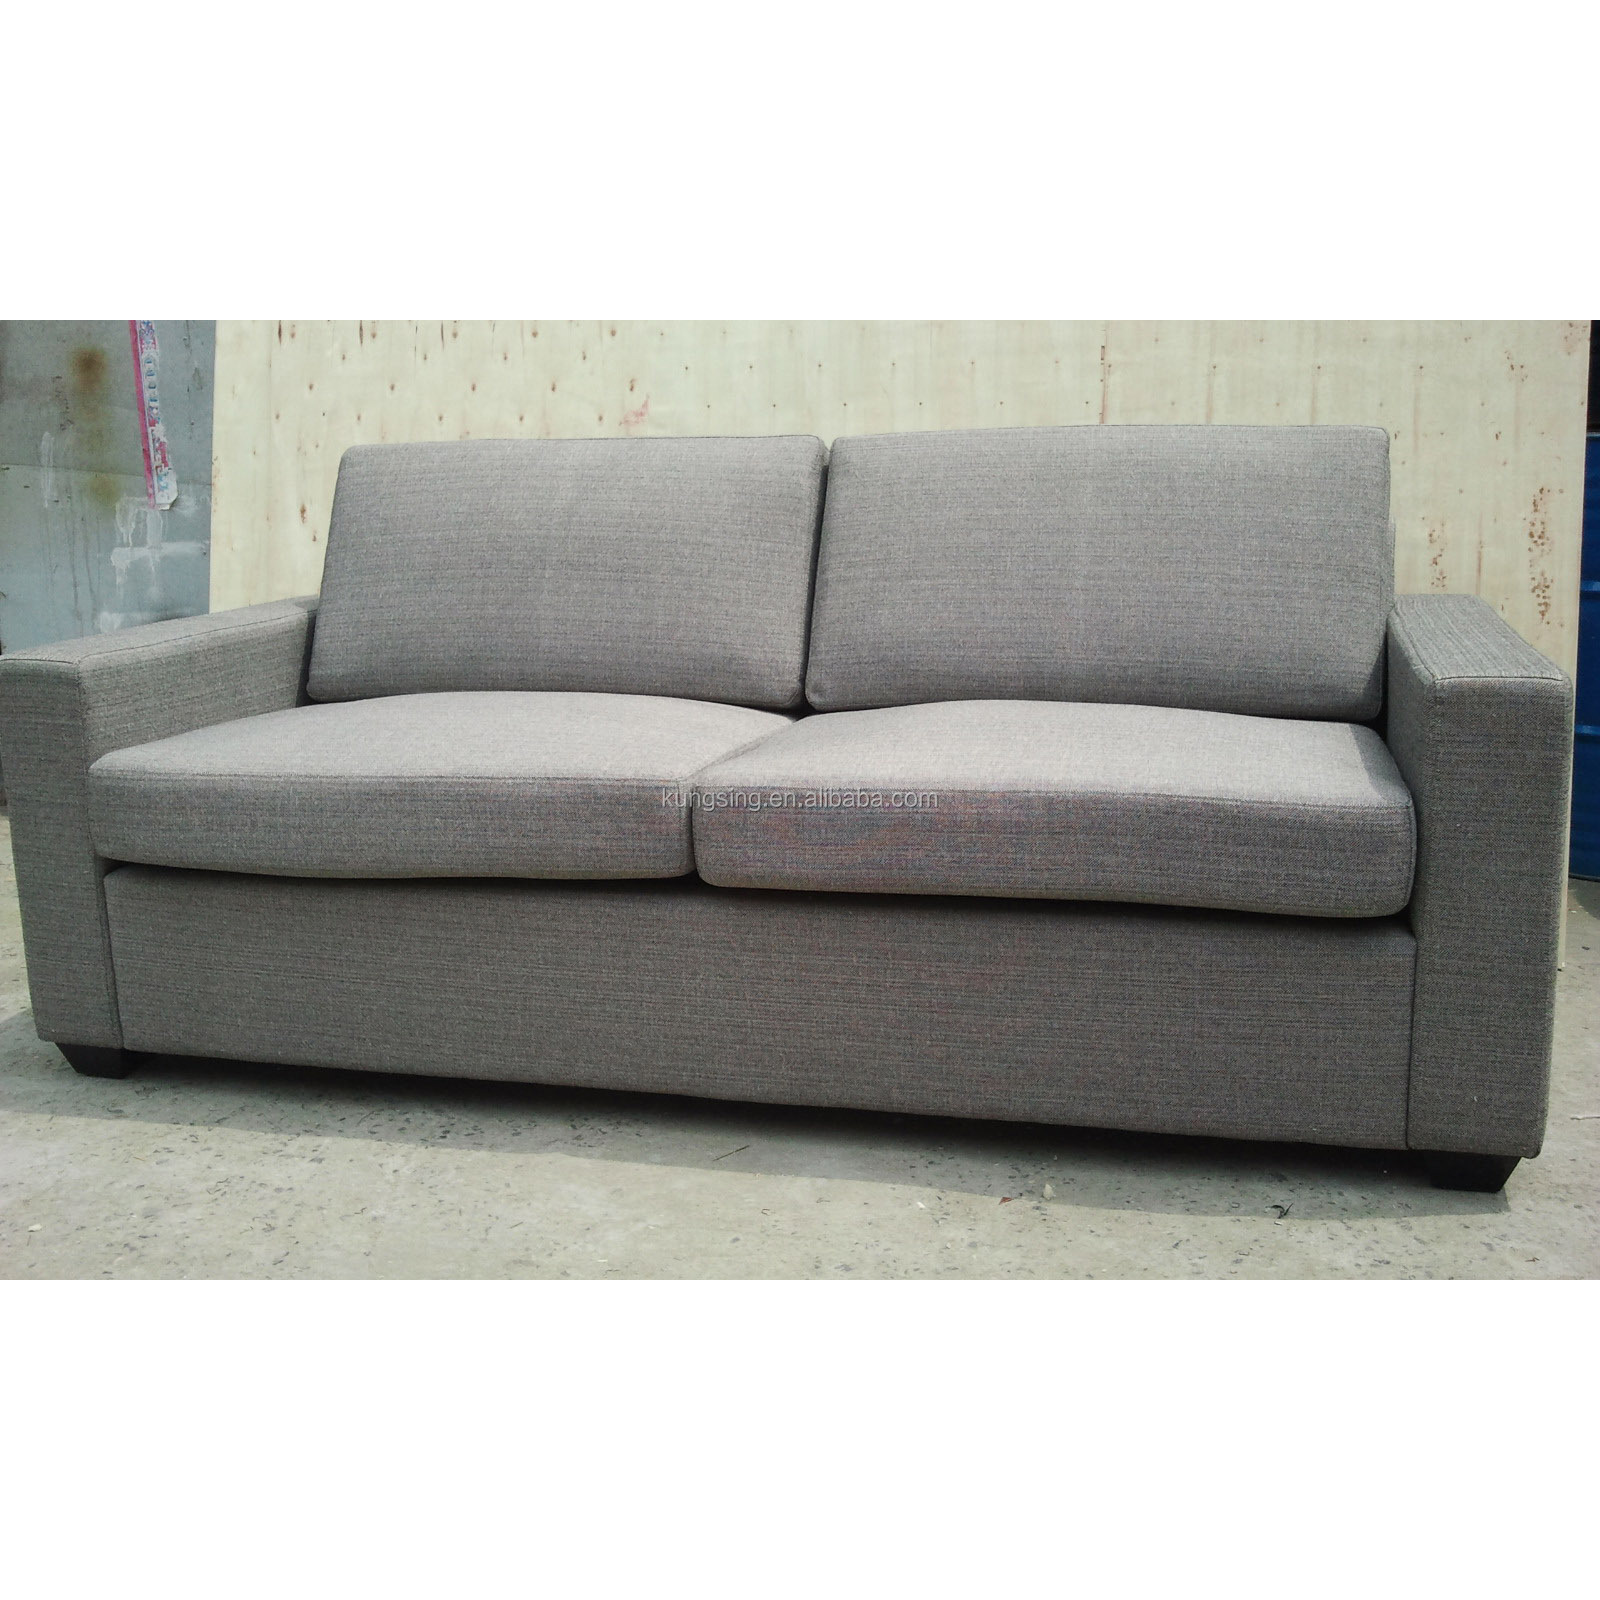 Incroyable Modern Design Custom Size Pull Out Sofa Cum Bed   Buy Pull Out Sofa Bed,Sofa  Cum Bed,Sofa Bed Product On Alibaba.com